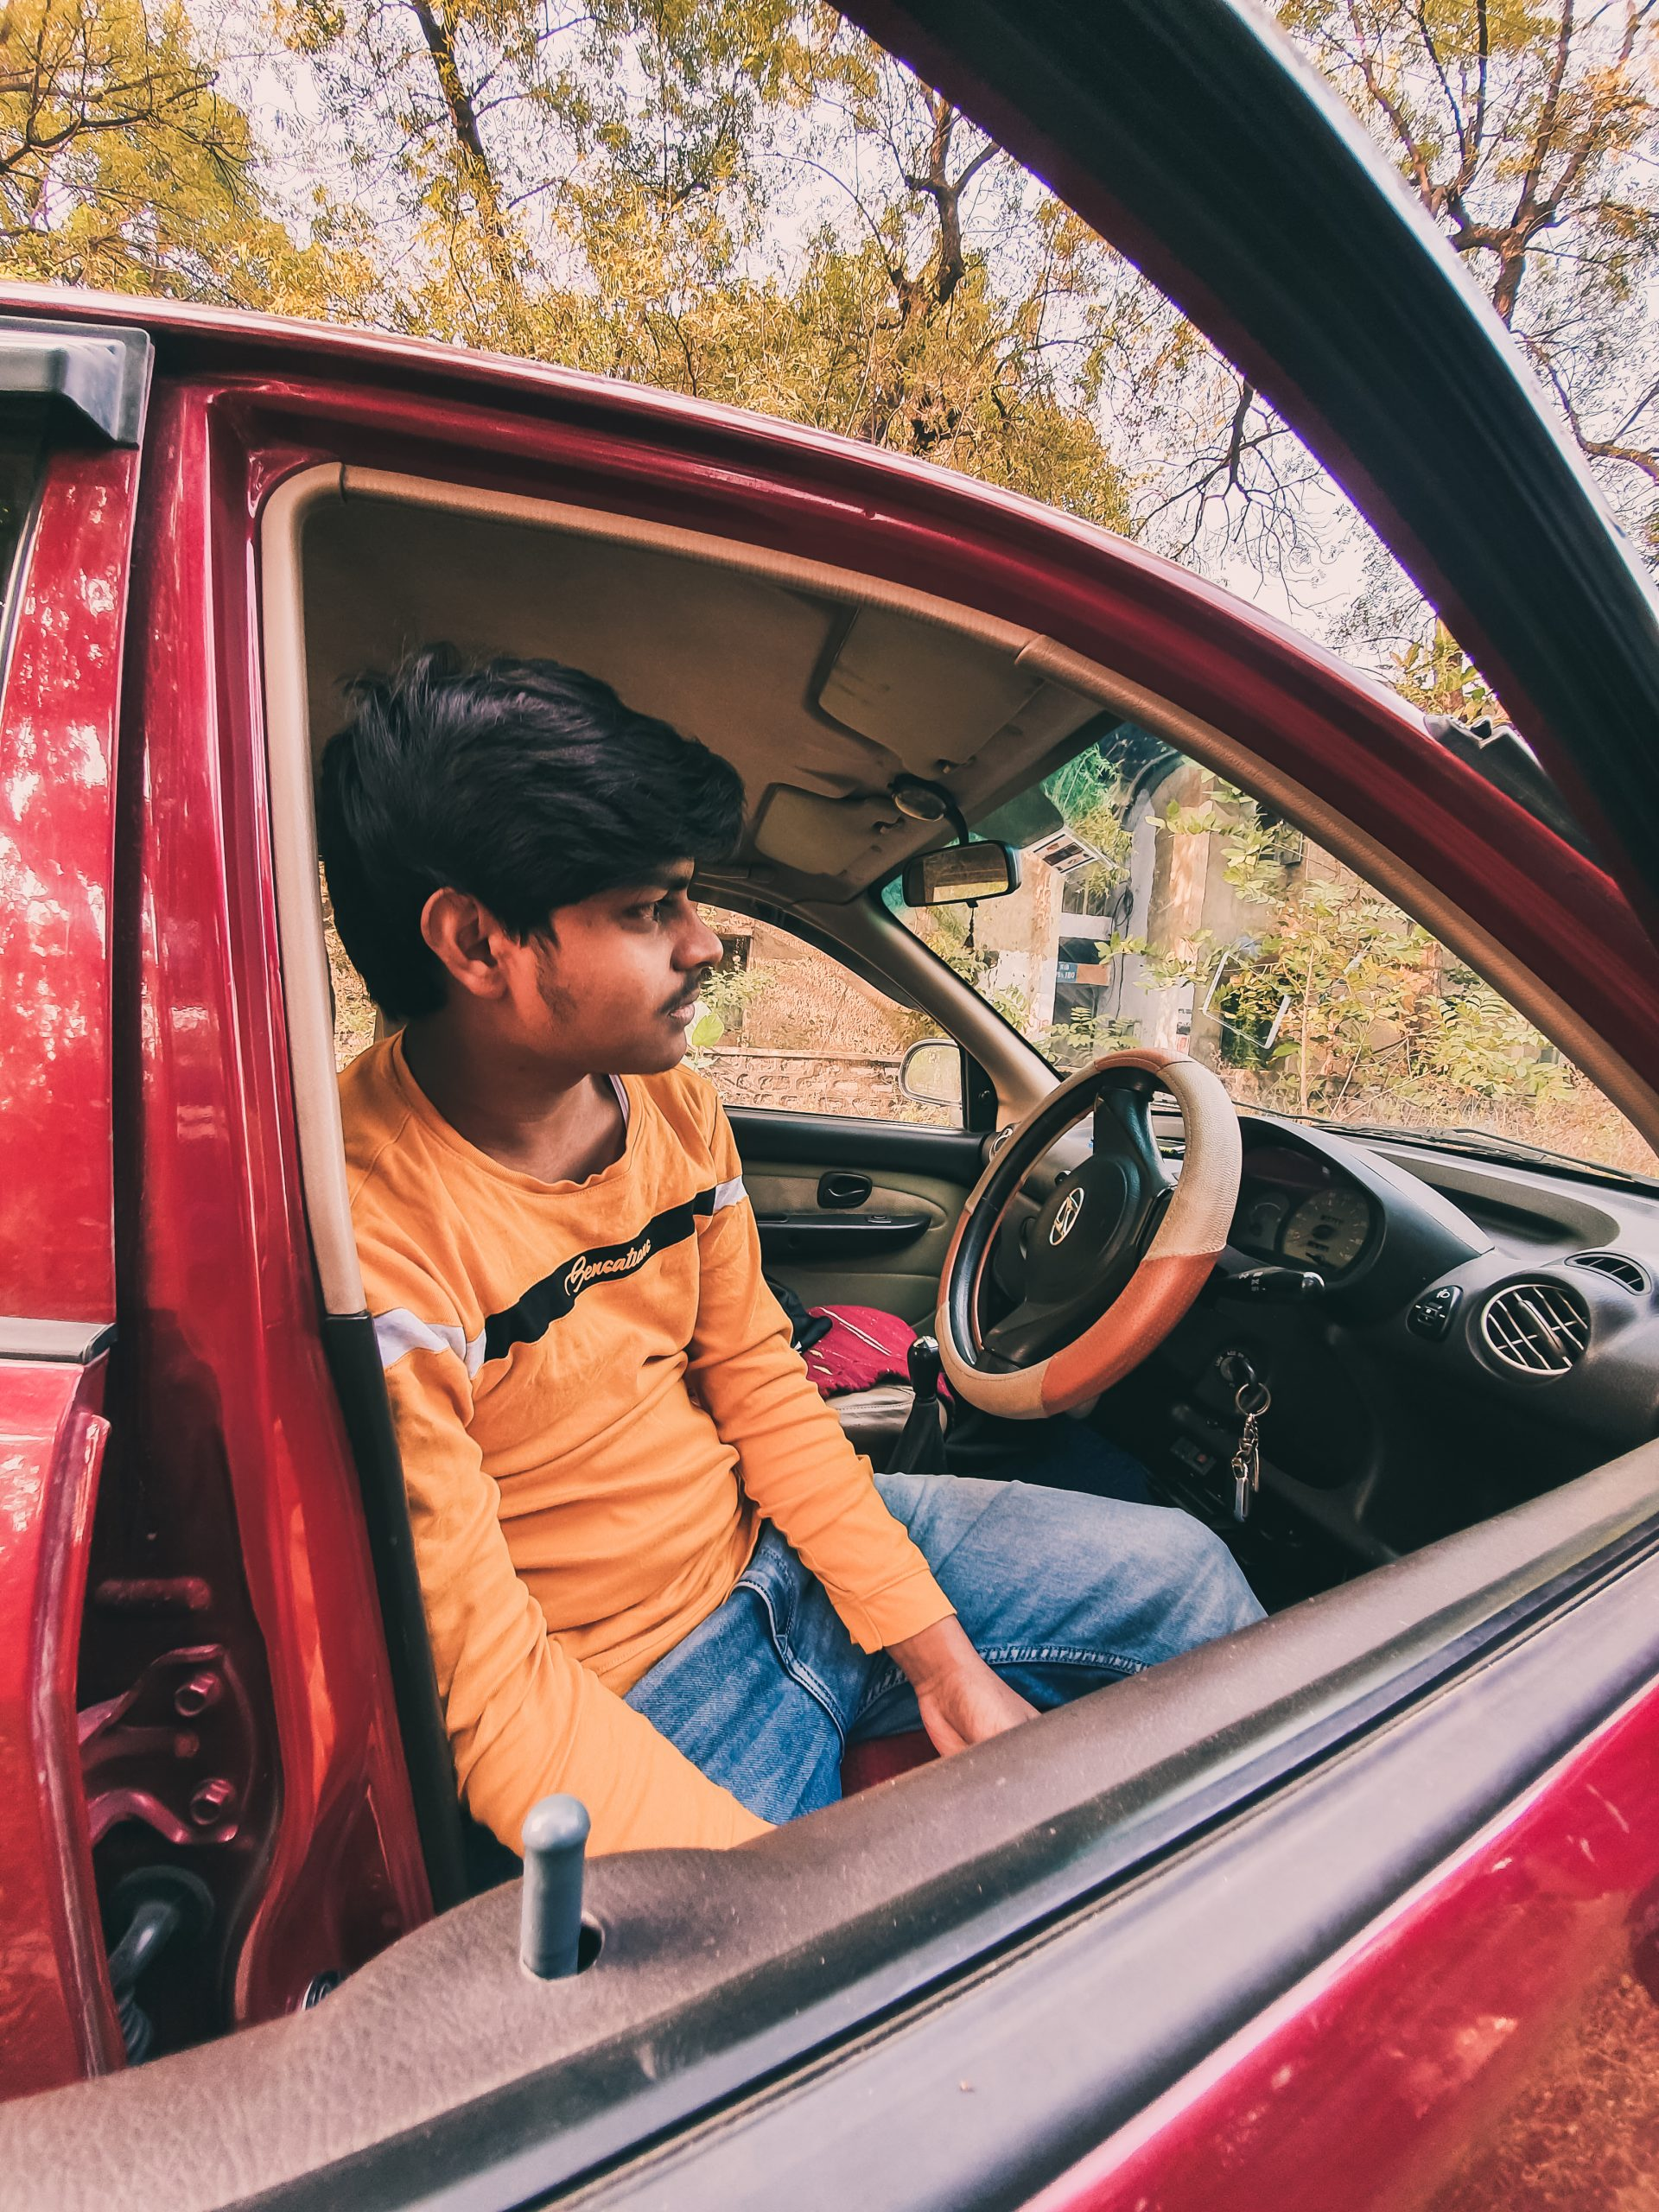 A boy in a car